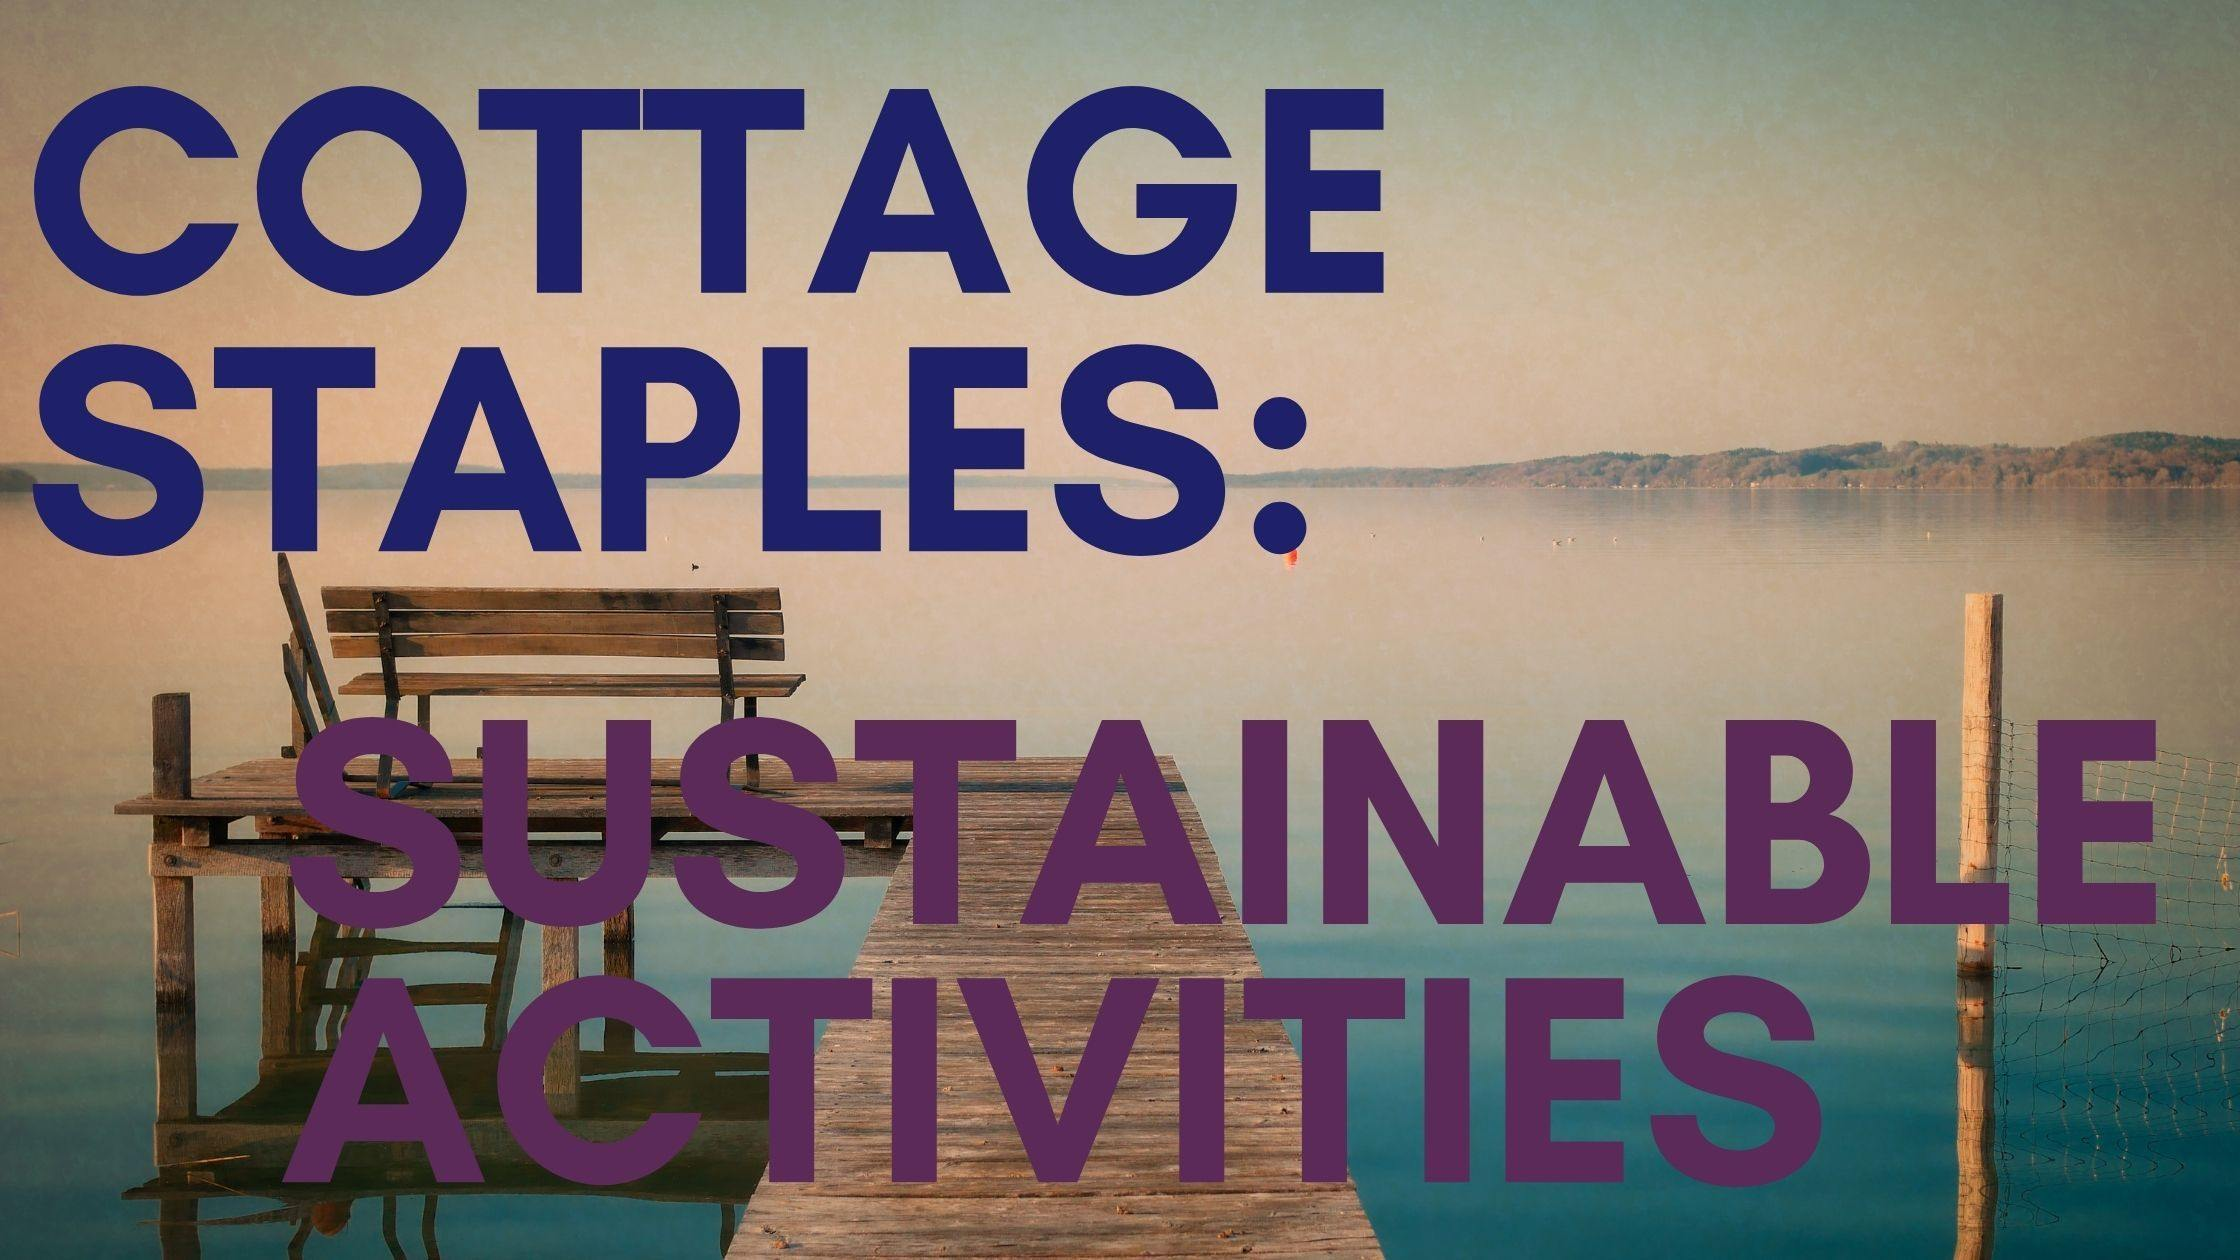 Cottage Staples: The 7 Best Sustainable Activities for the Cottage